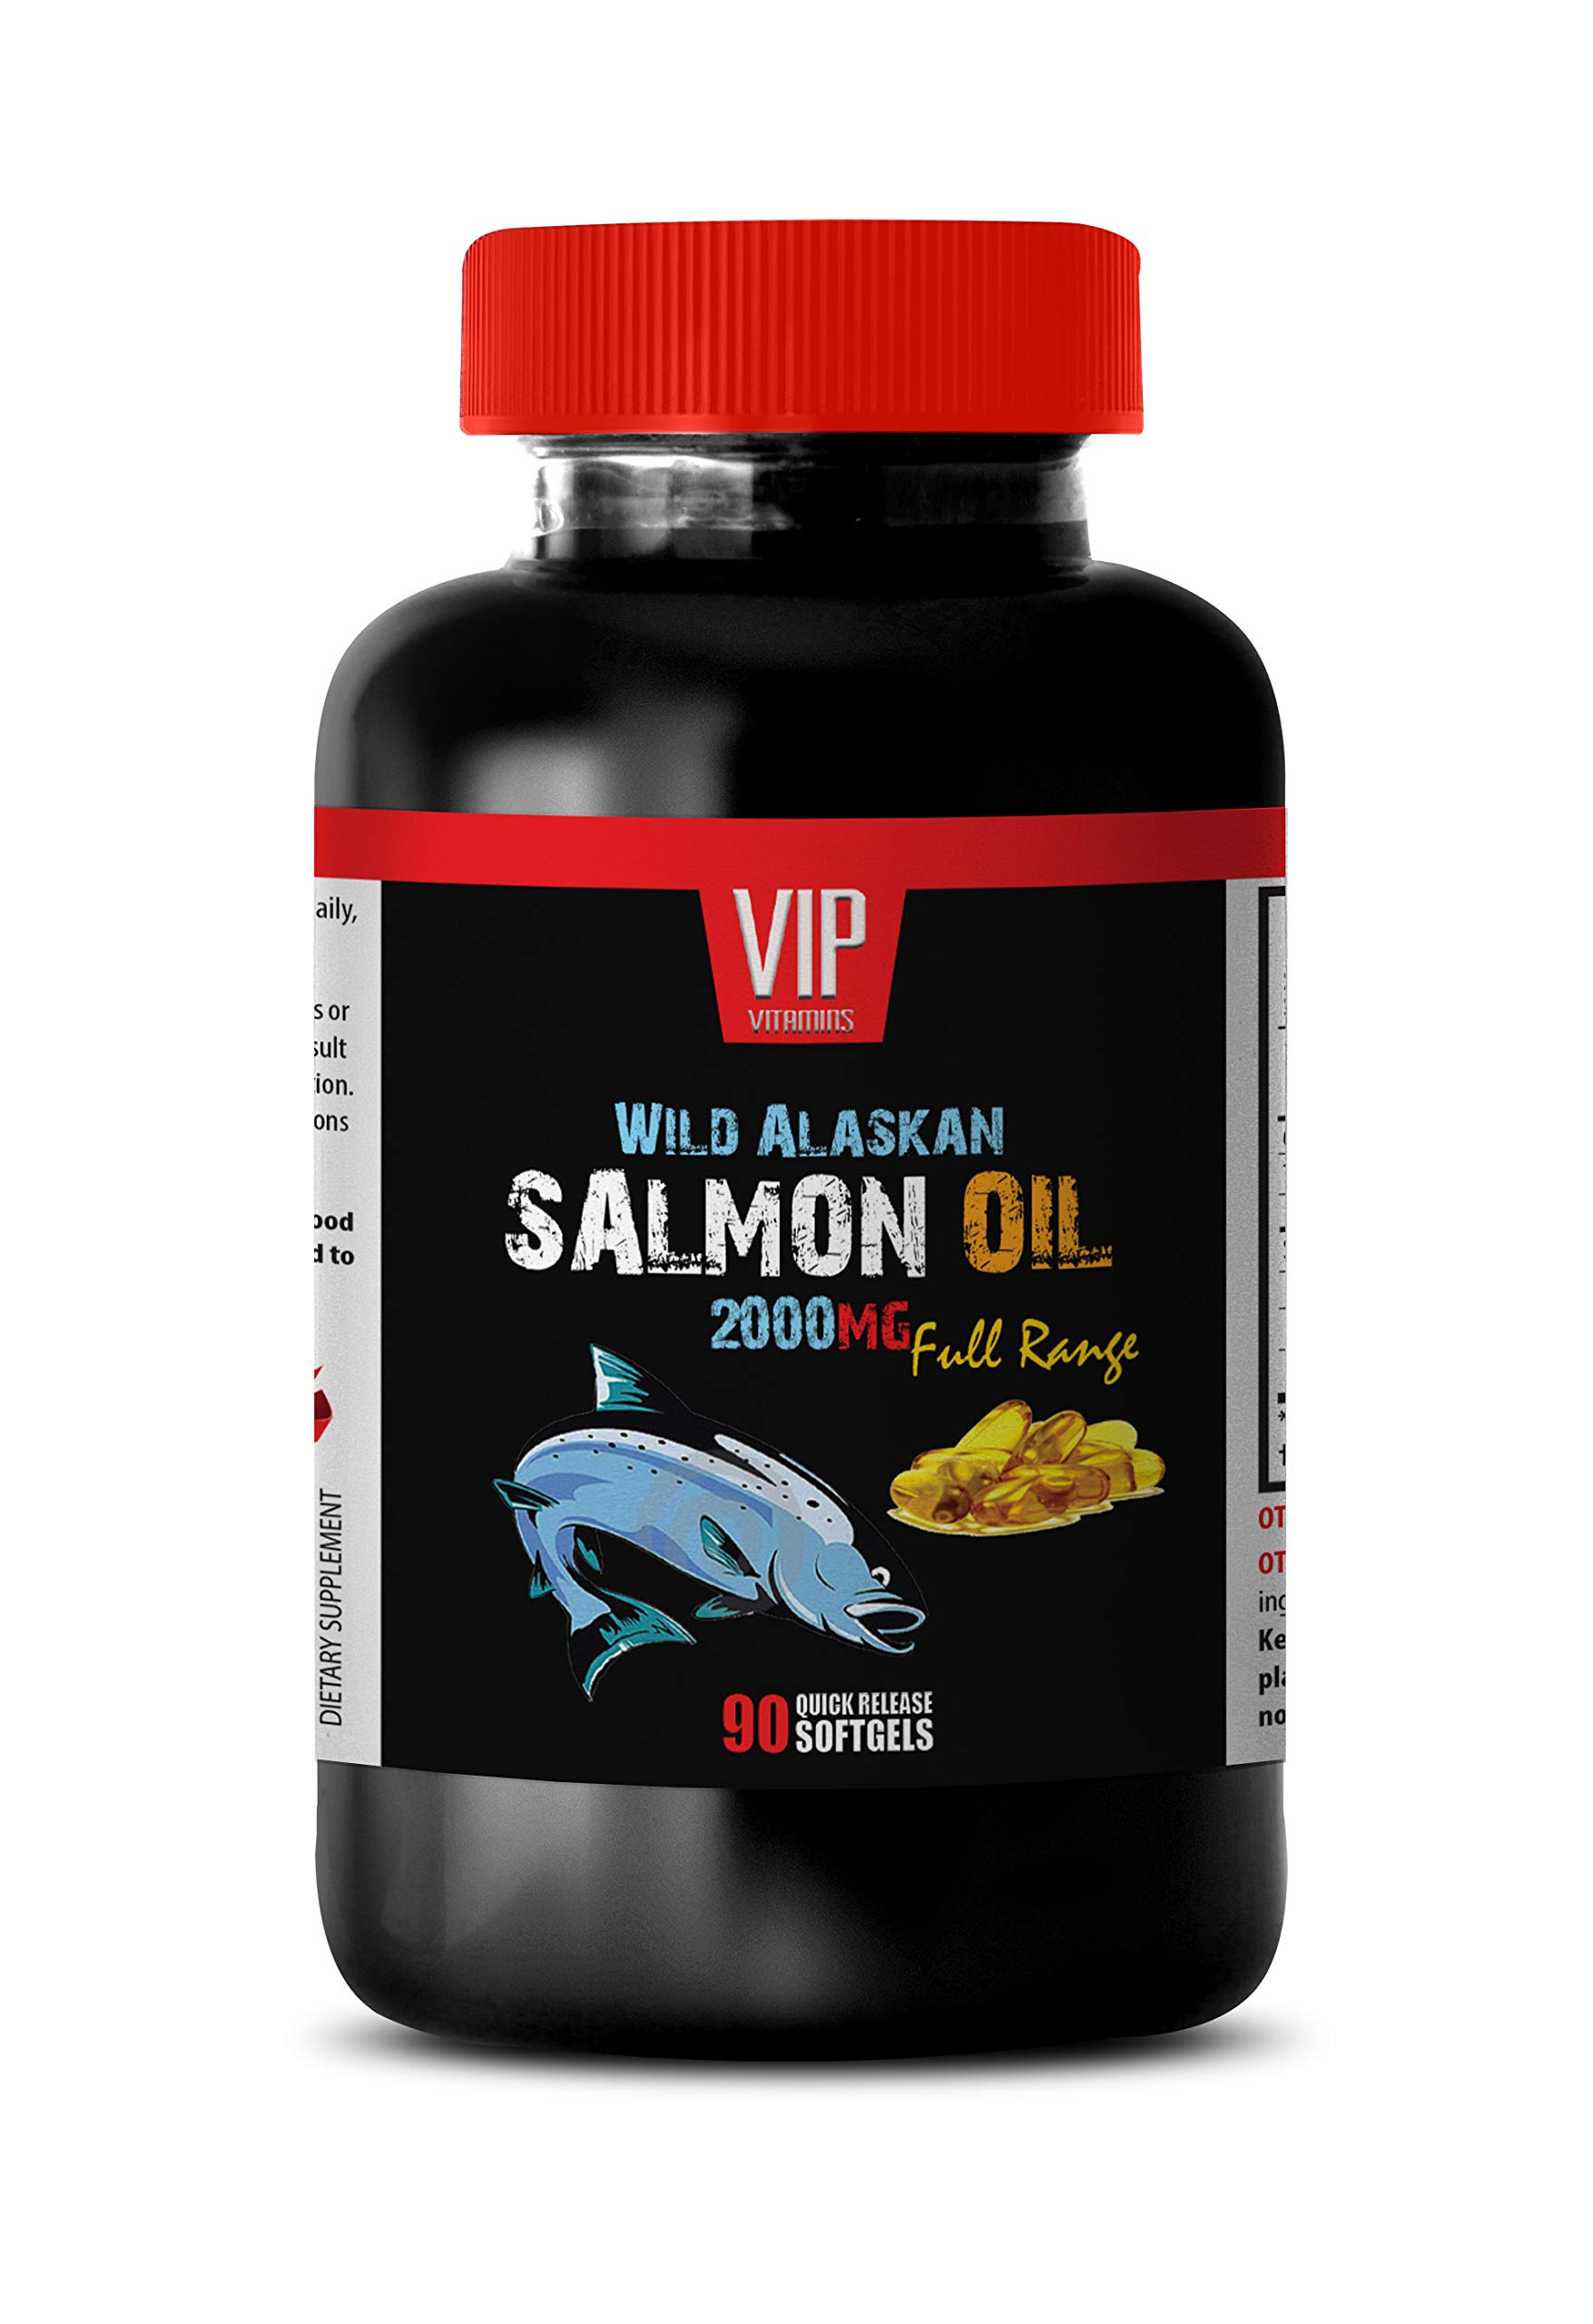 Brain Booster and Memory Enhancer - Wild Alaskan Salmon Oil 2000 - Wild Alaskan Salmon Oil softgels - 1 Bottle 90 Softgels by VIP VITAMINS